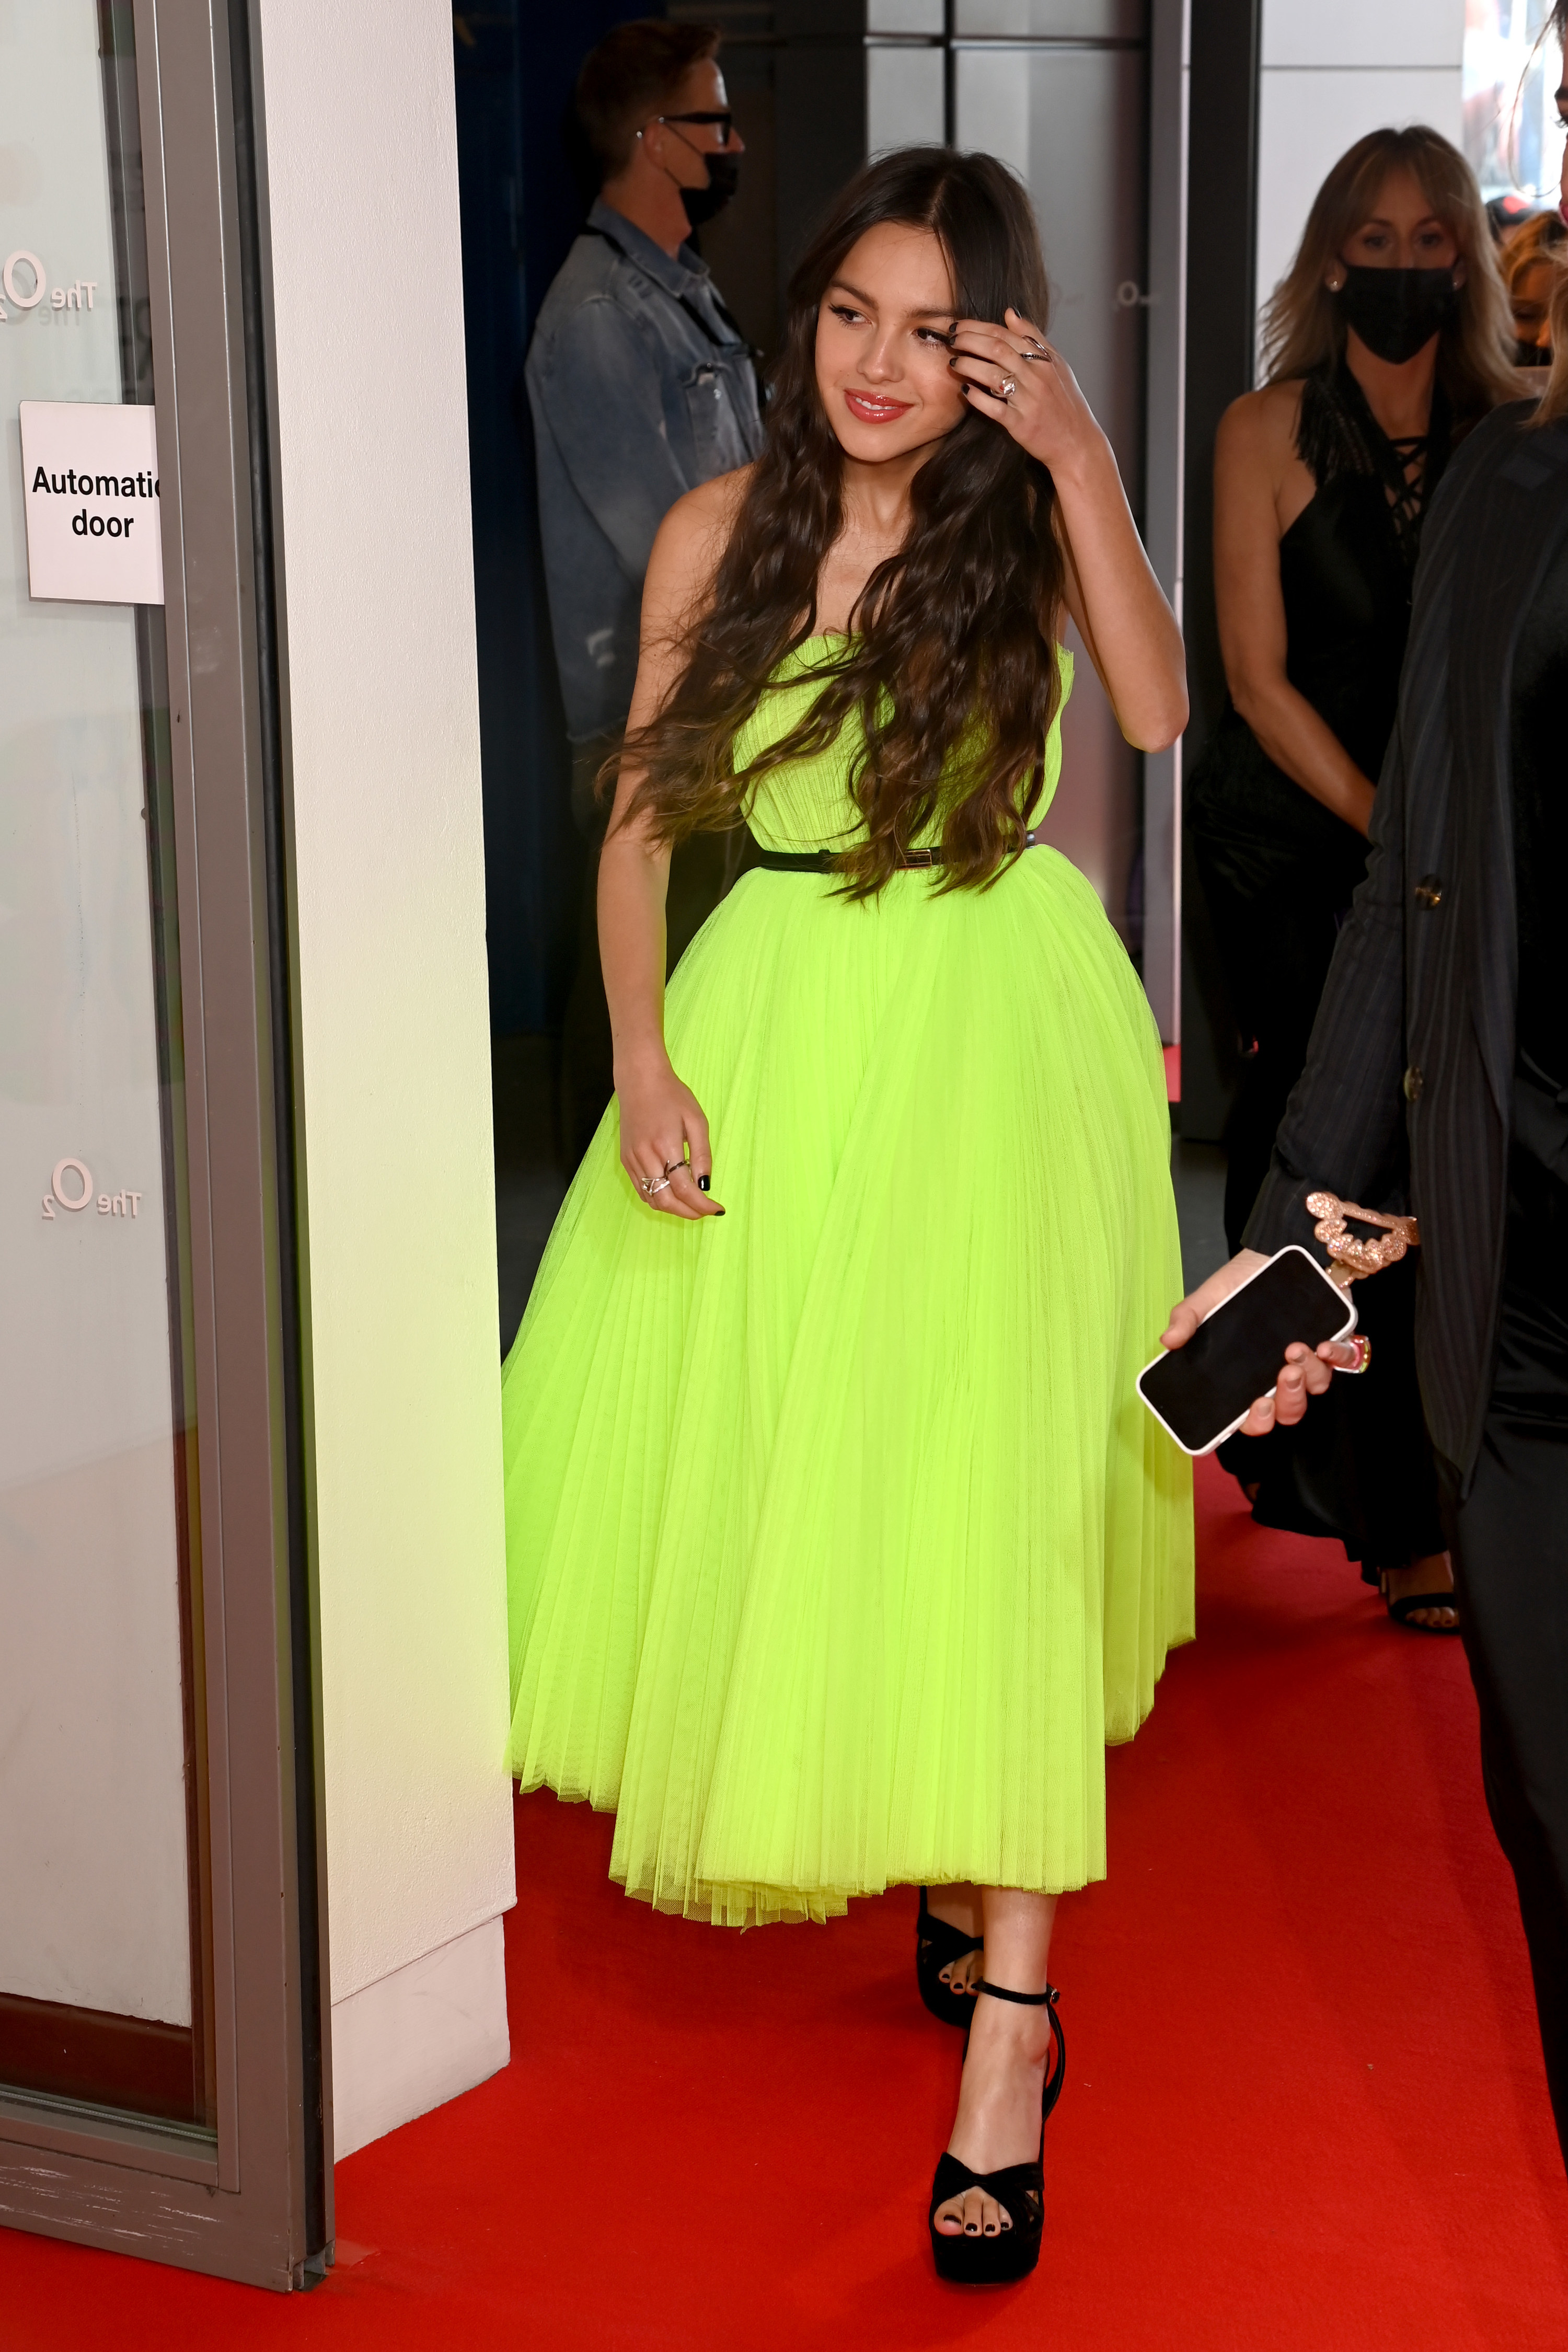 Olivia in a brightly colored flared dress at an event